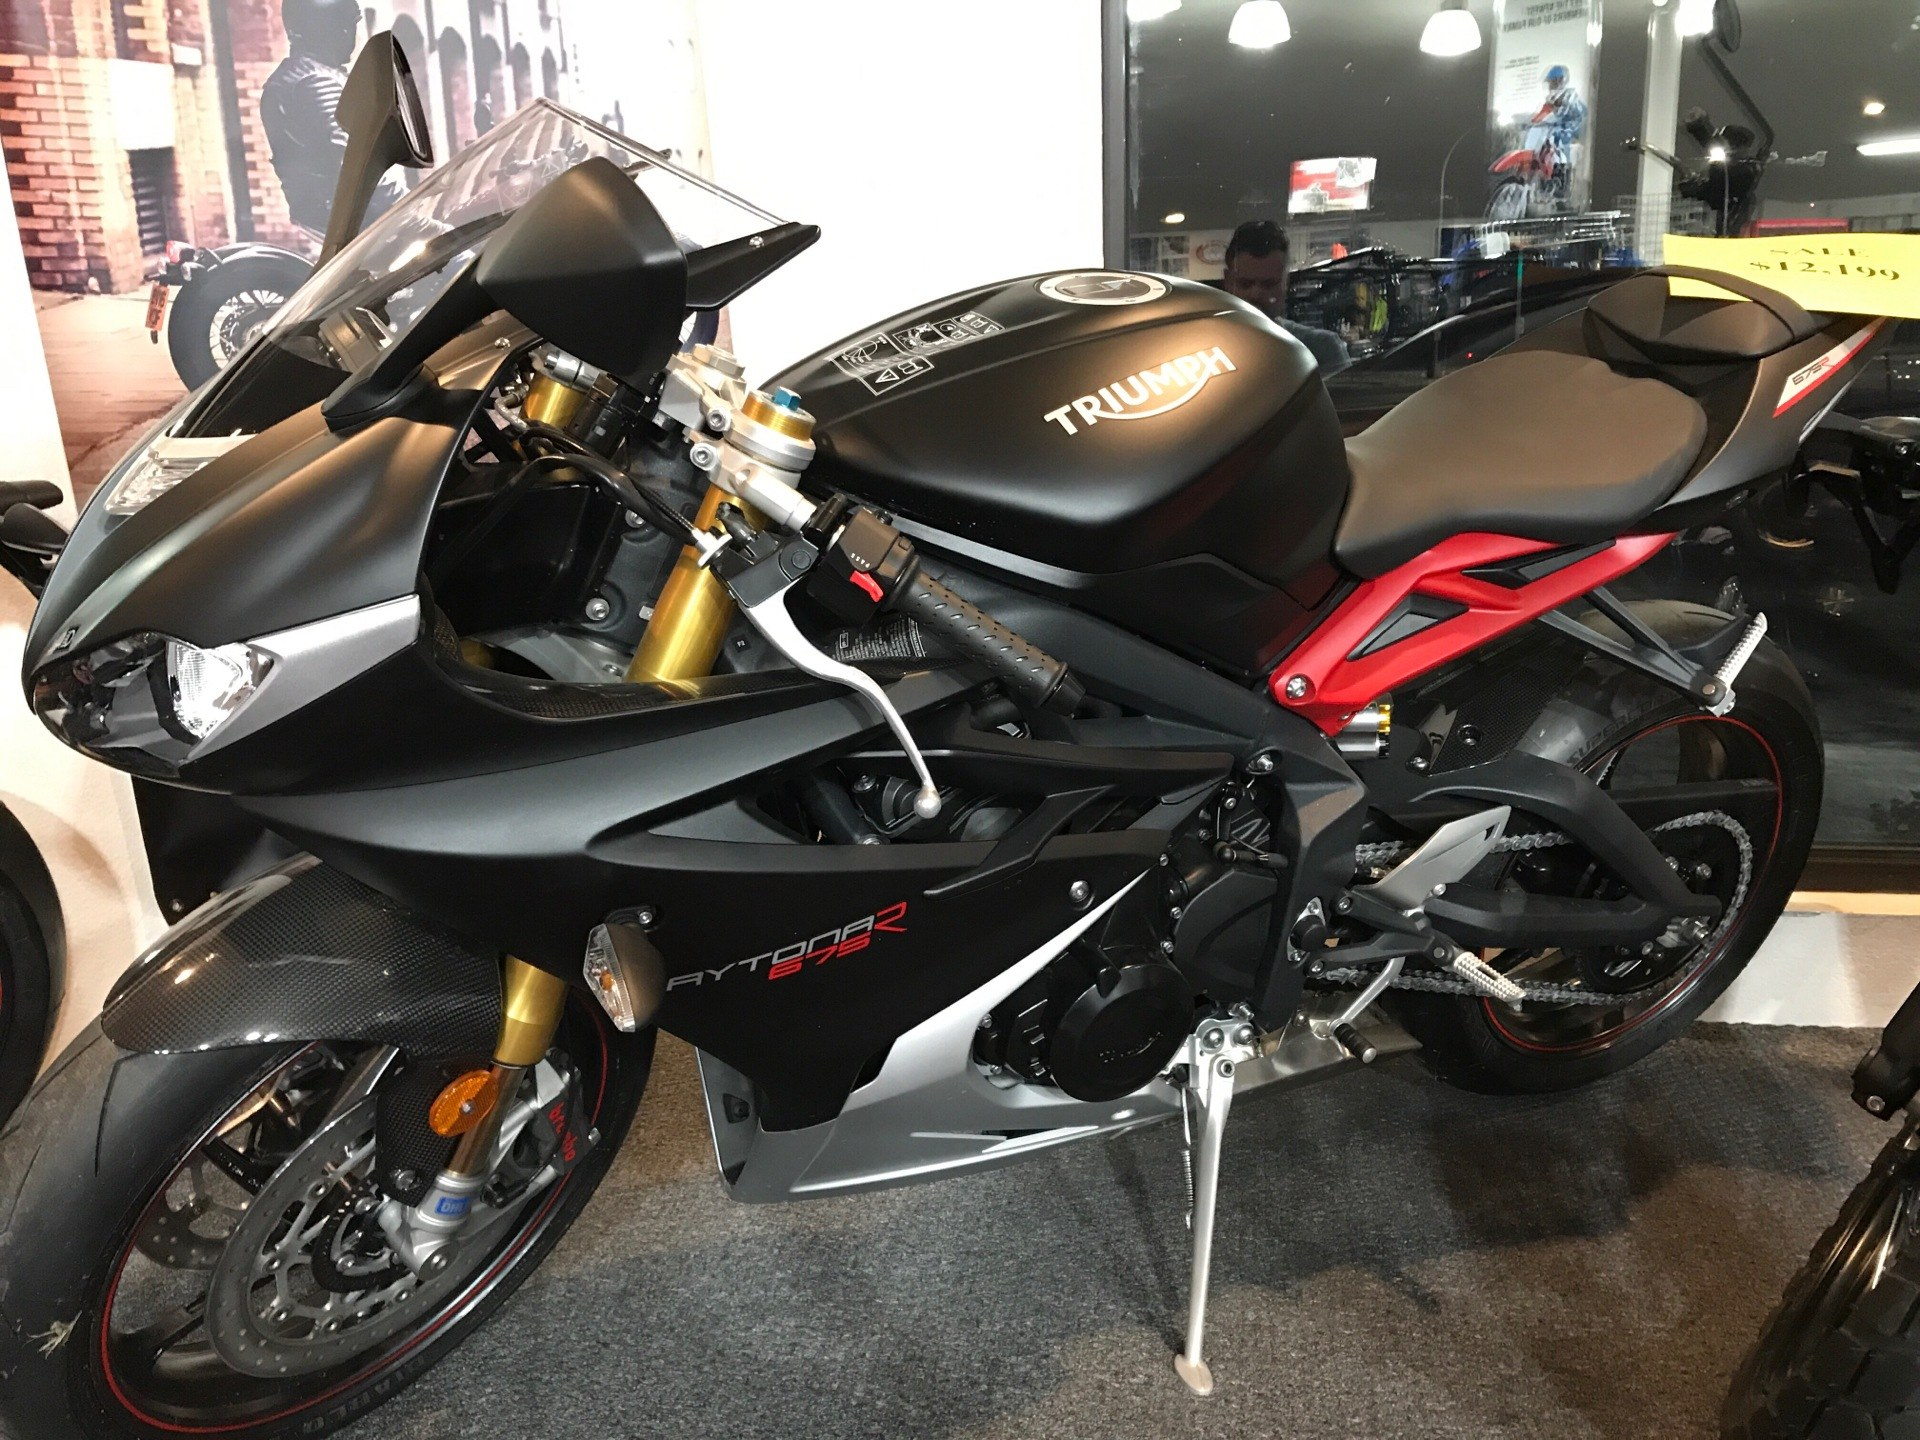 2016 Triumph Daytona 675 R ABS in Belle Plaine, Minnesota